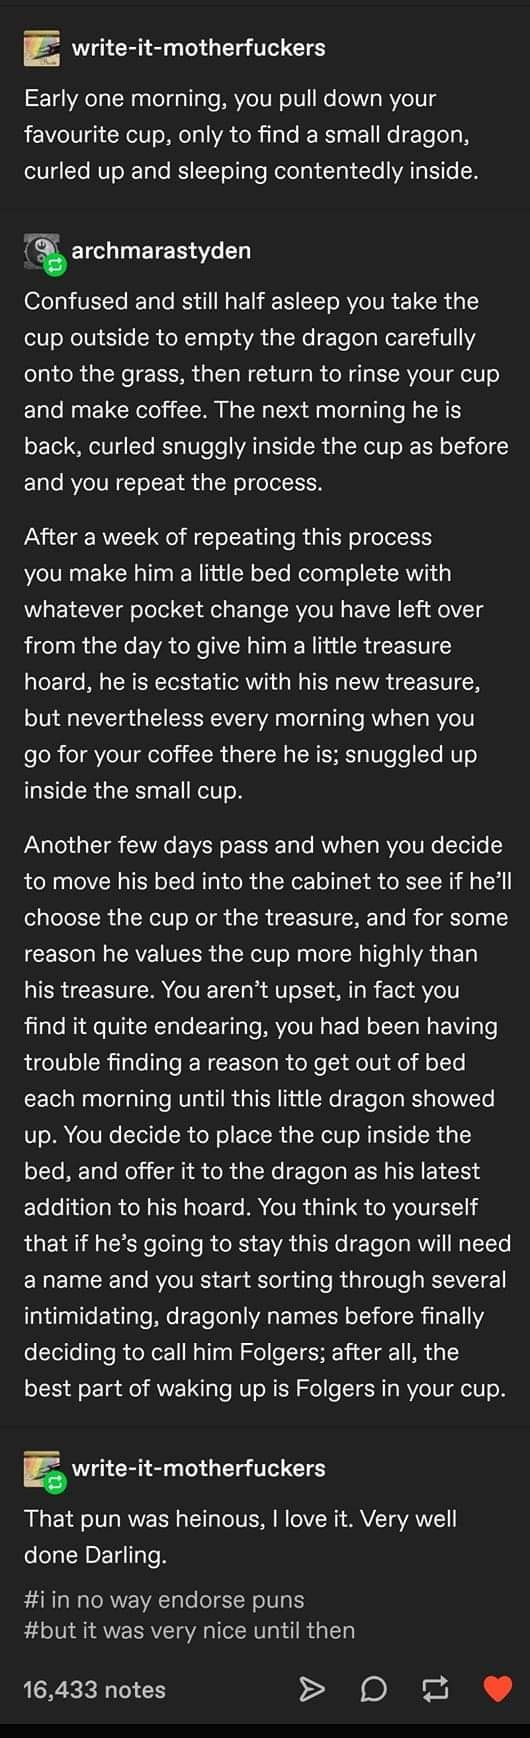 Tiny Dragon in Your Cup